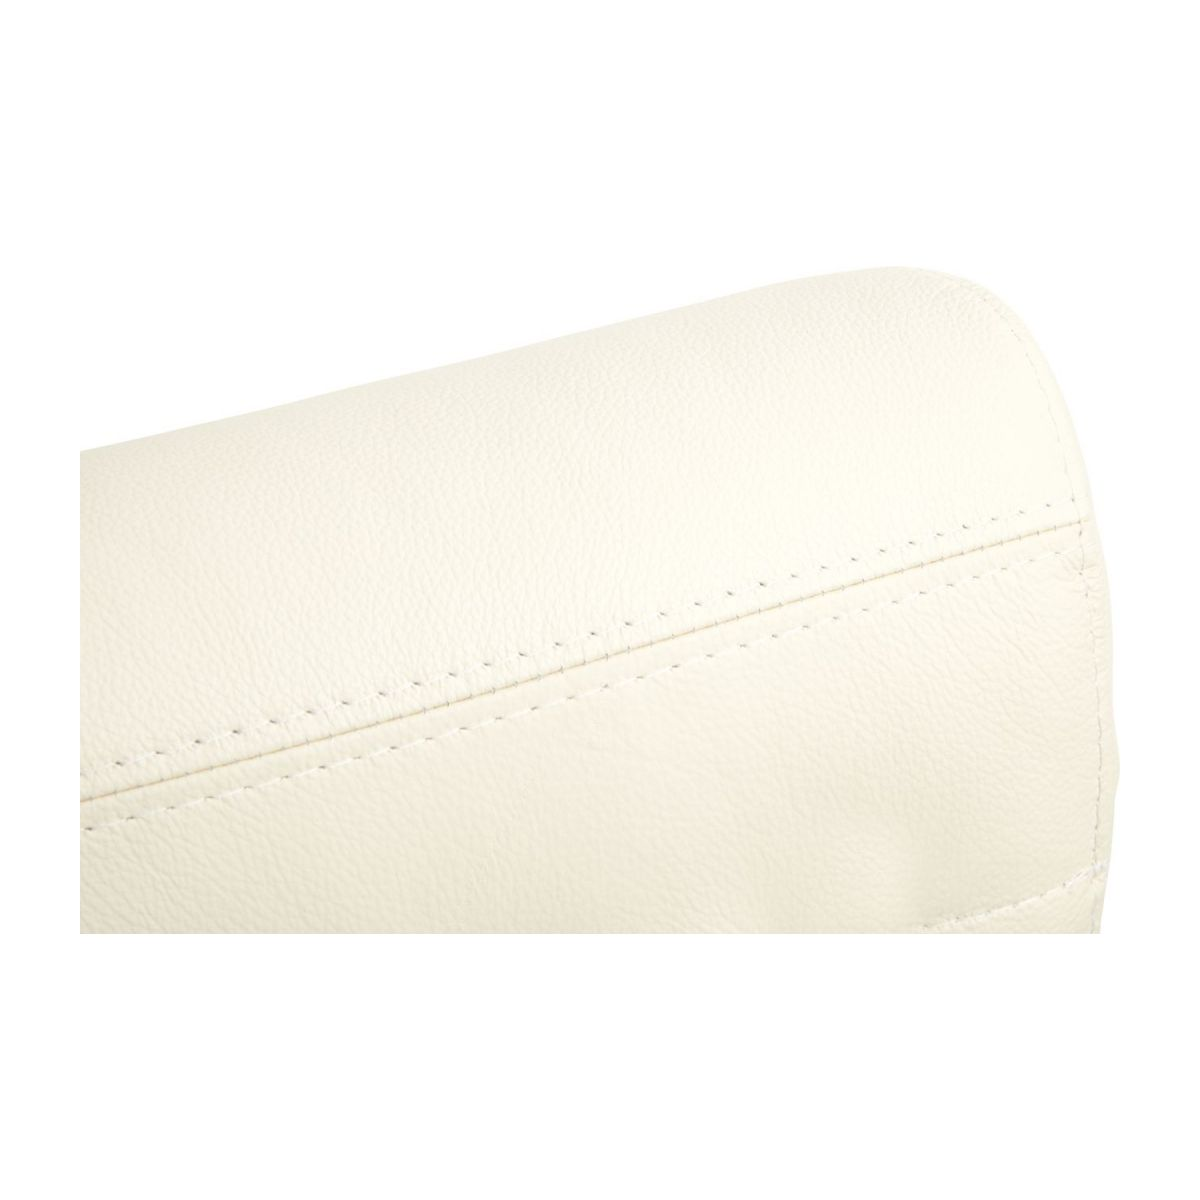 Headrest in Eton veined leather, cream n°6